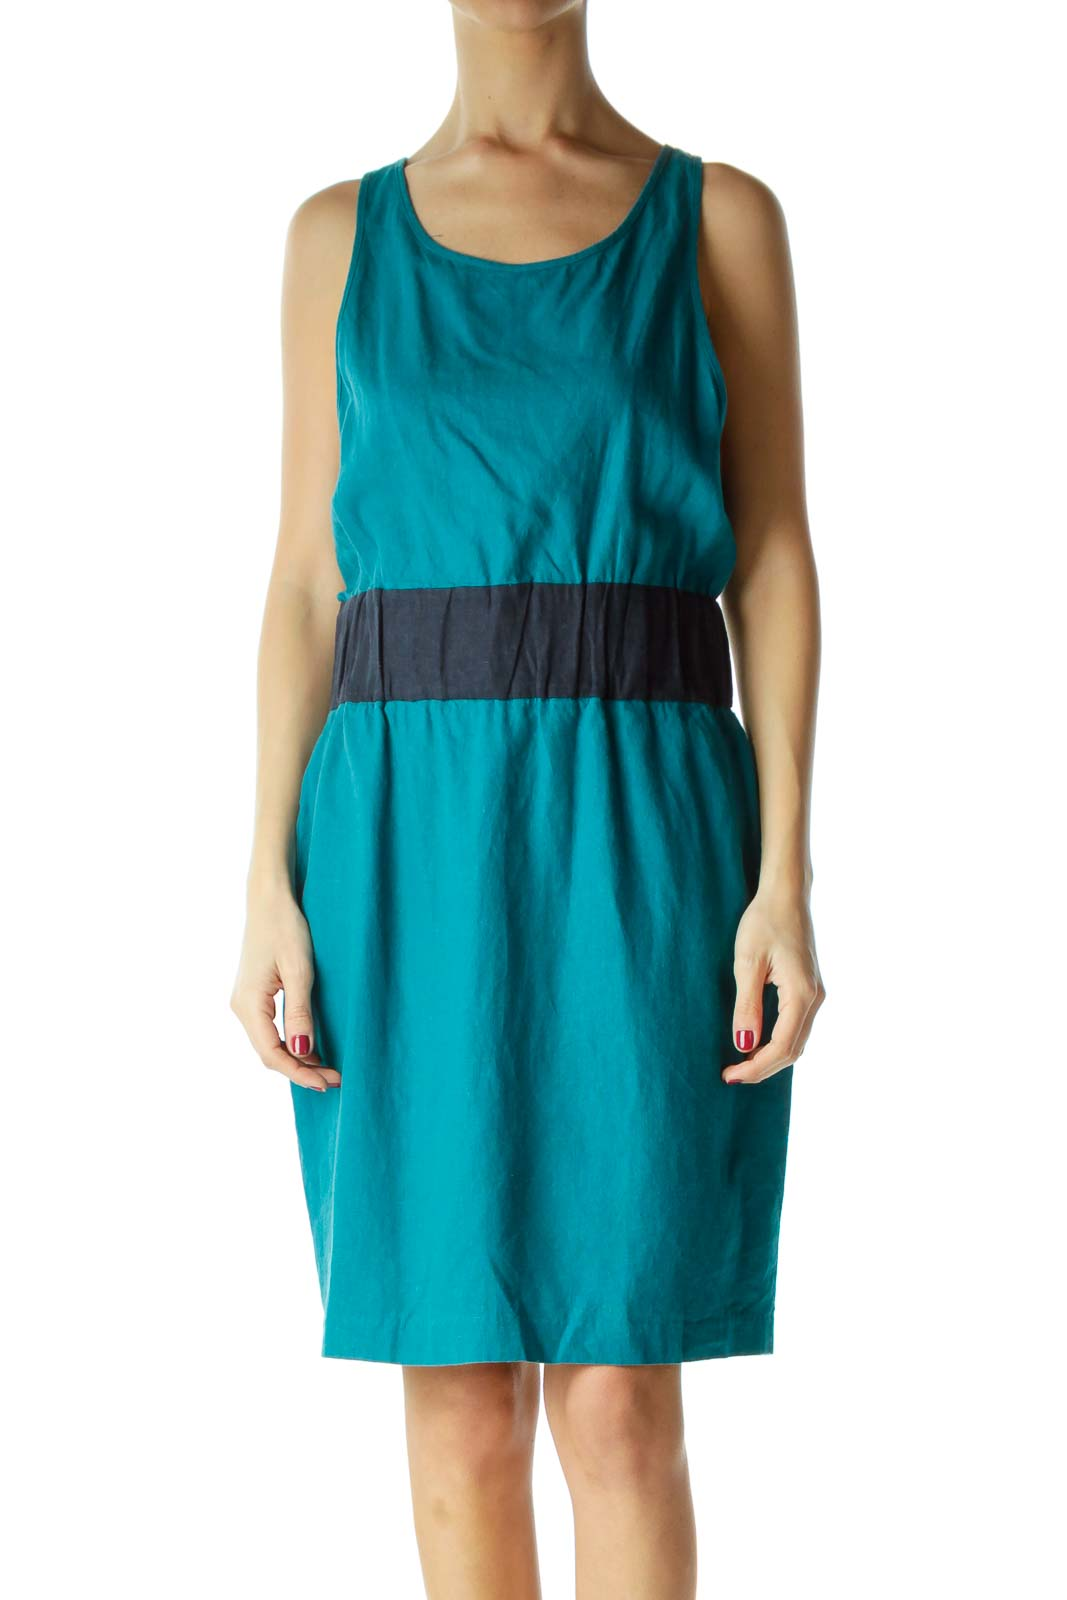 Blue Sleeveless Elastic Waist Day Dress